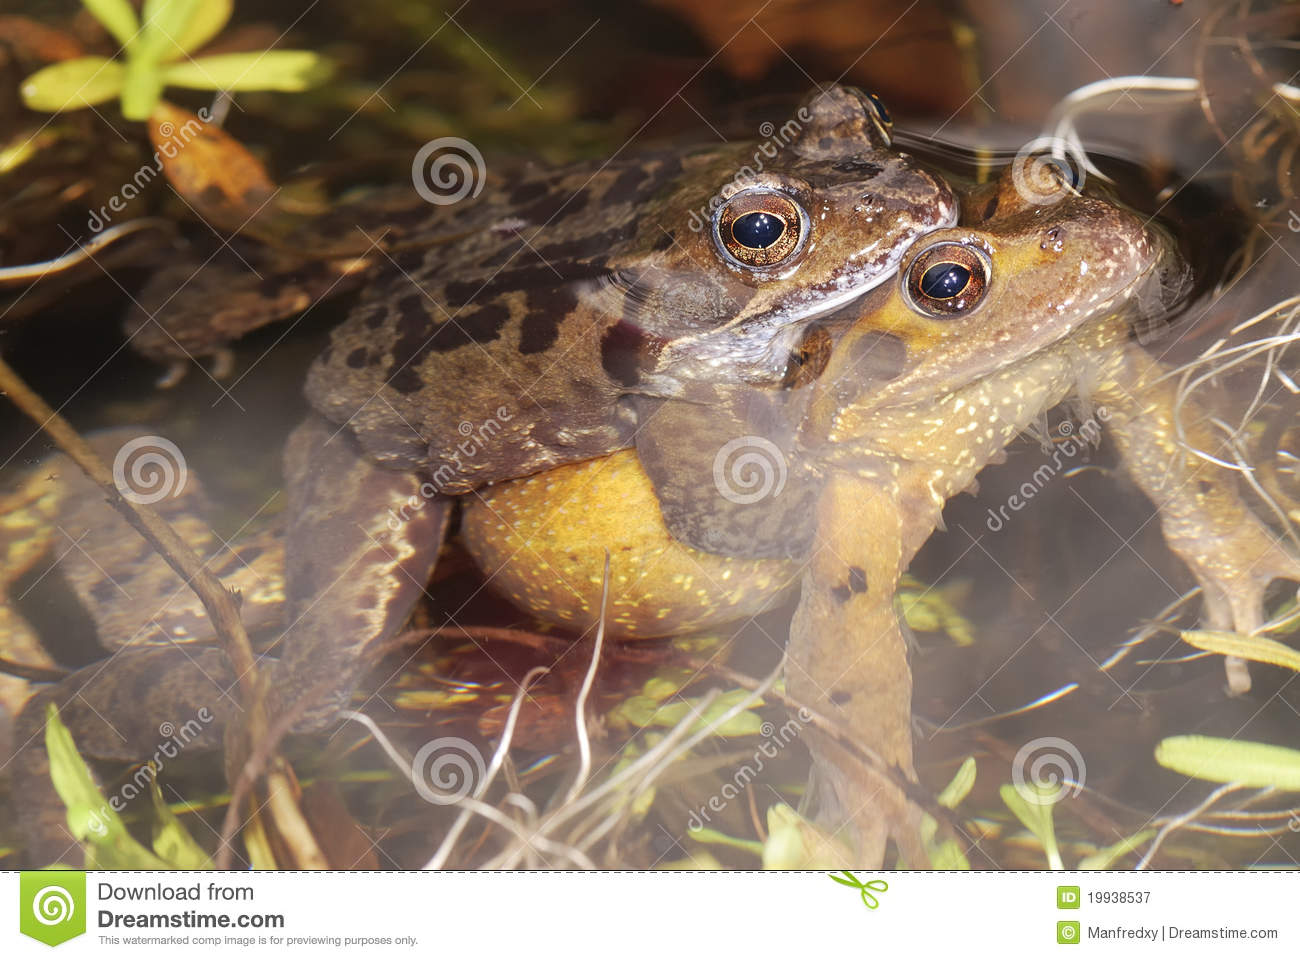 Royalty Free Stock Photography: Frog sex: http://dreamstime.com/royalty-free-stock-photography-frog-sex-image19938537